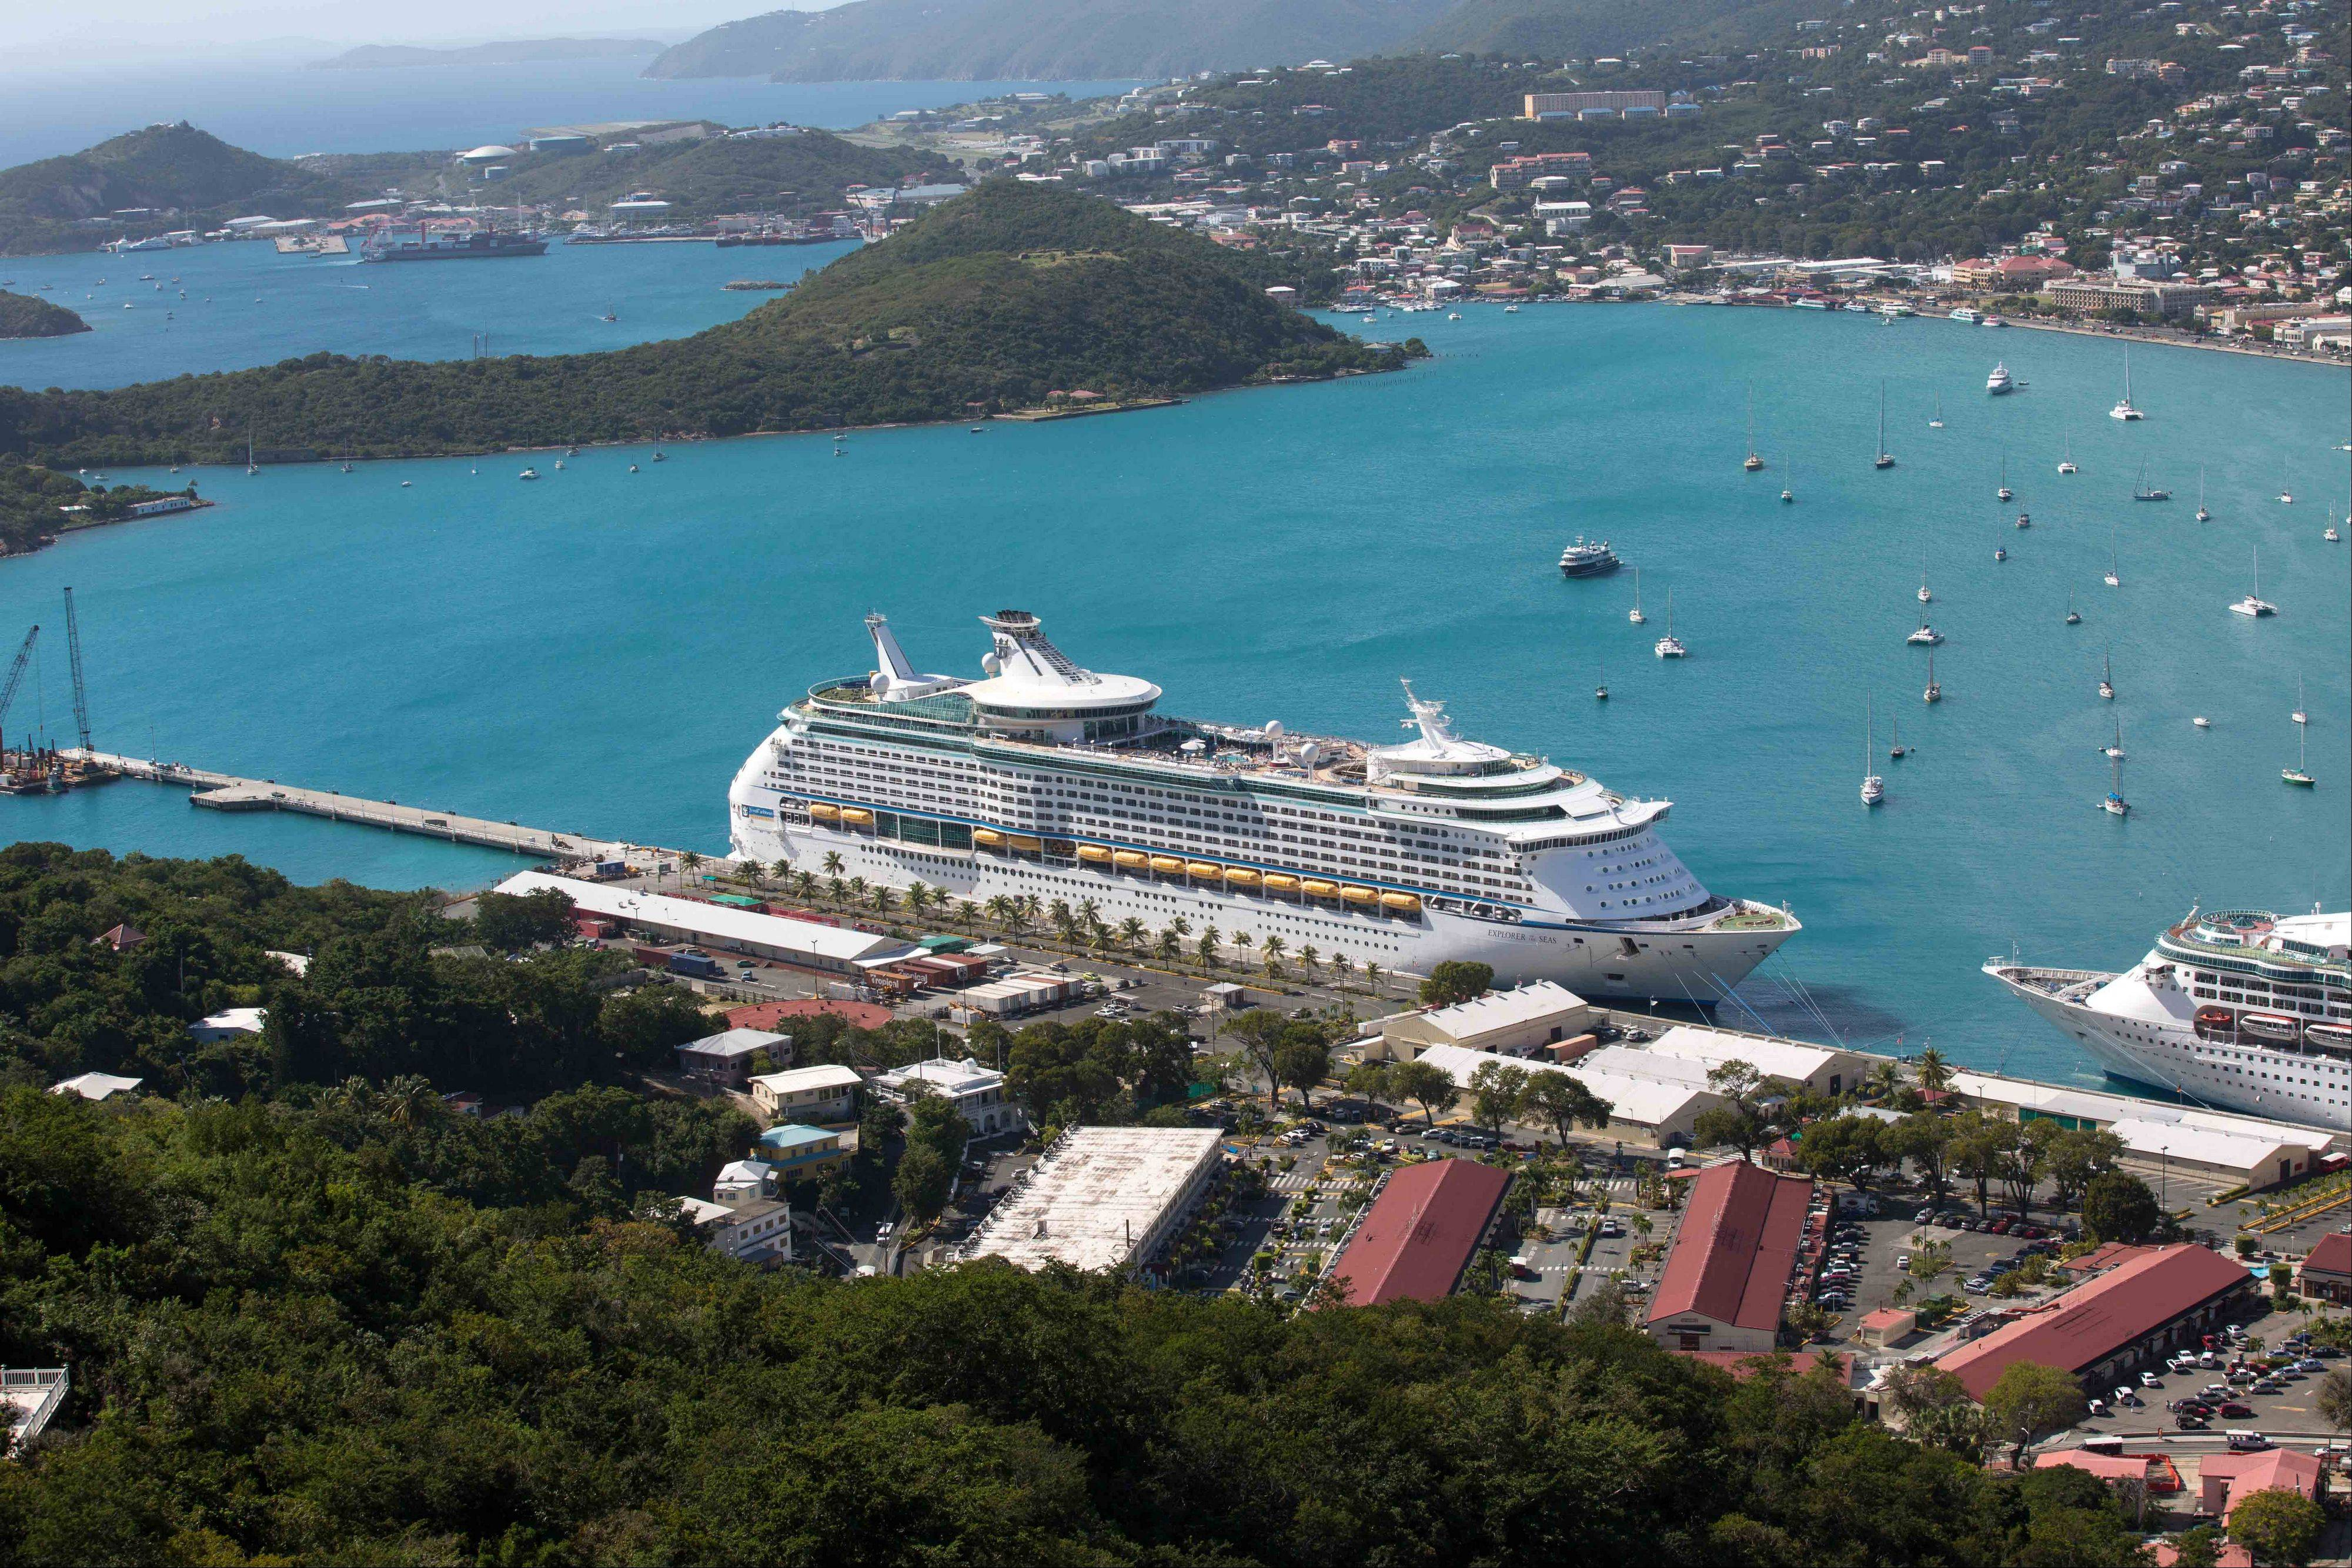 The Royal Caribbean International�s Explorer of the Seas docked at Charlotte Amalie Harbor in St. Thomas, U. S. Virgin Islands, Sunday.